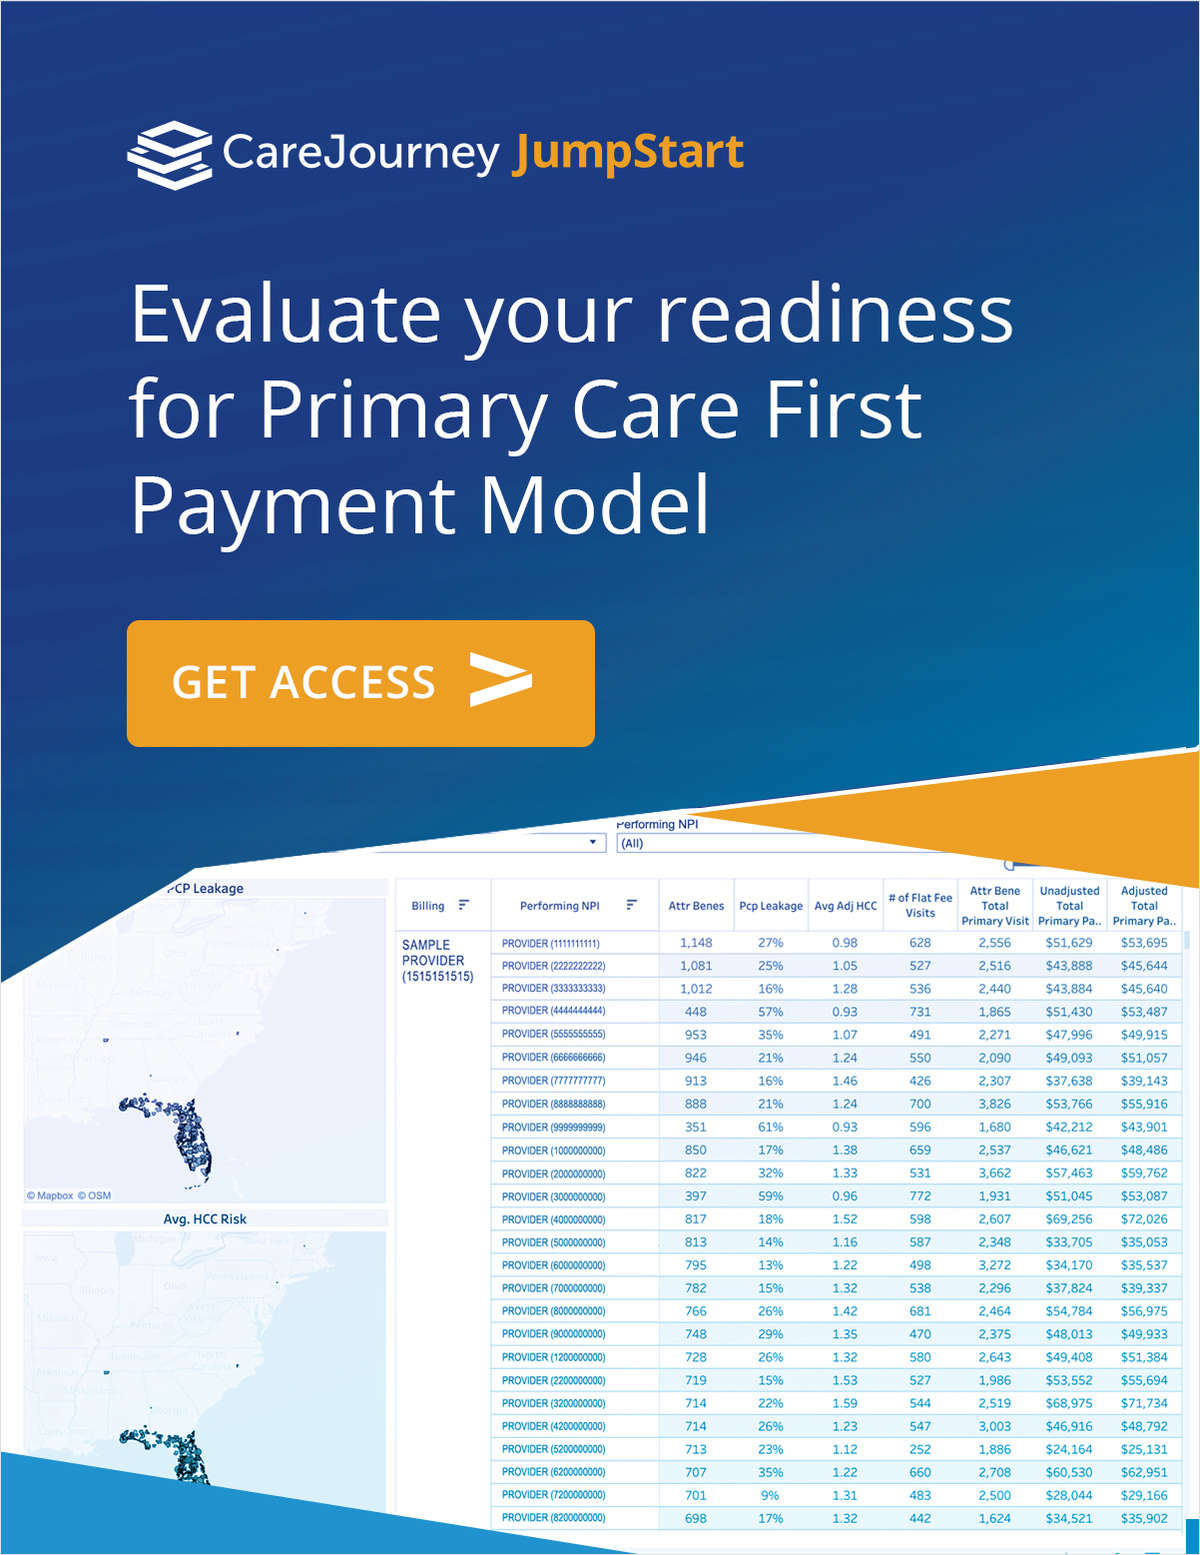 Evaluate your readiness for CMS's Primary Care First Payment Model